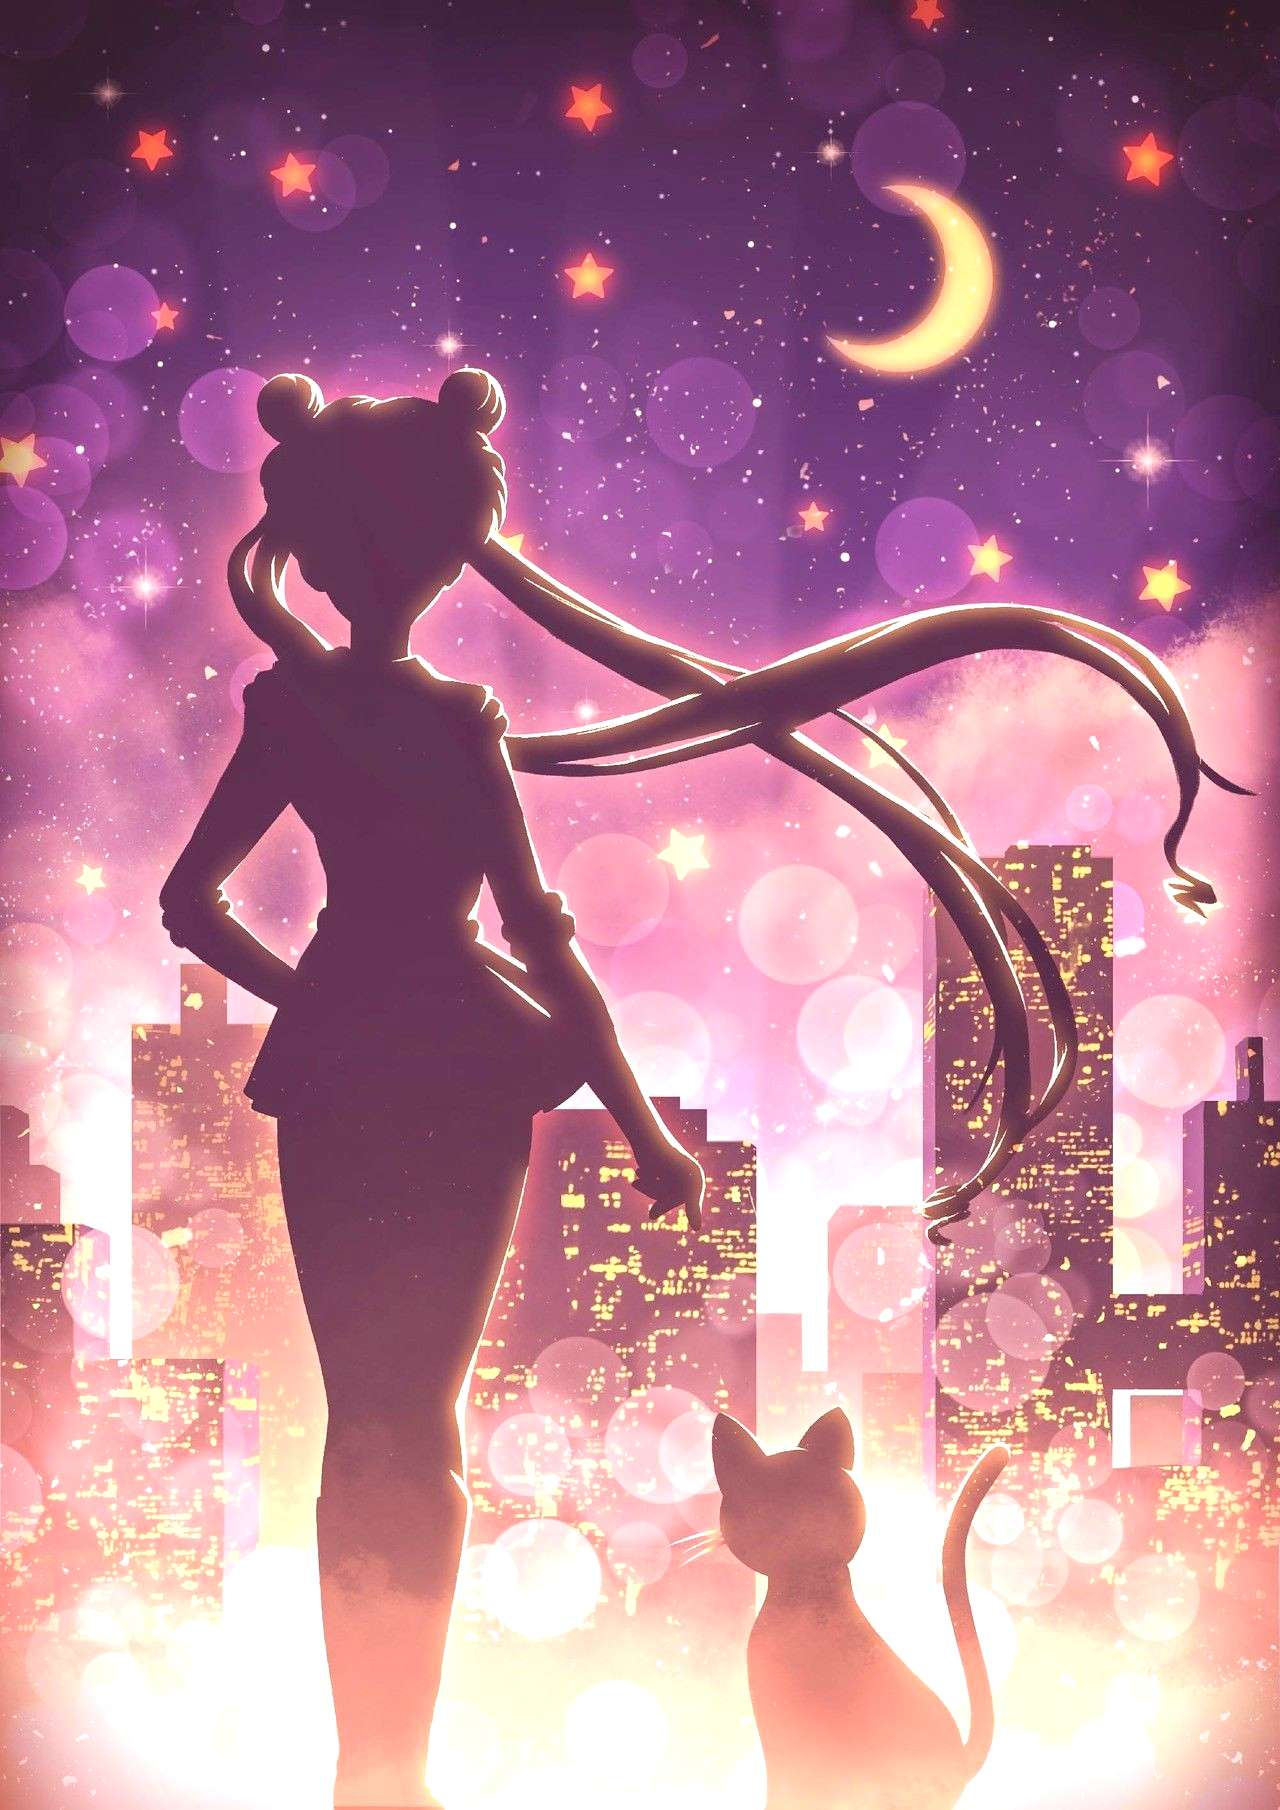 Still walking on nostalgia lane, this time with Sailor Moon, my favourite series when I was a child